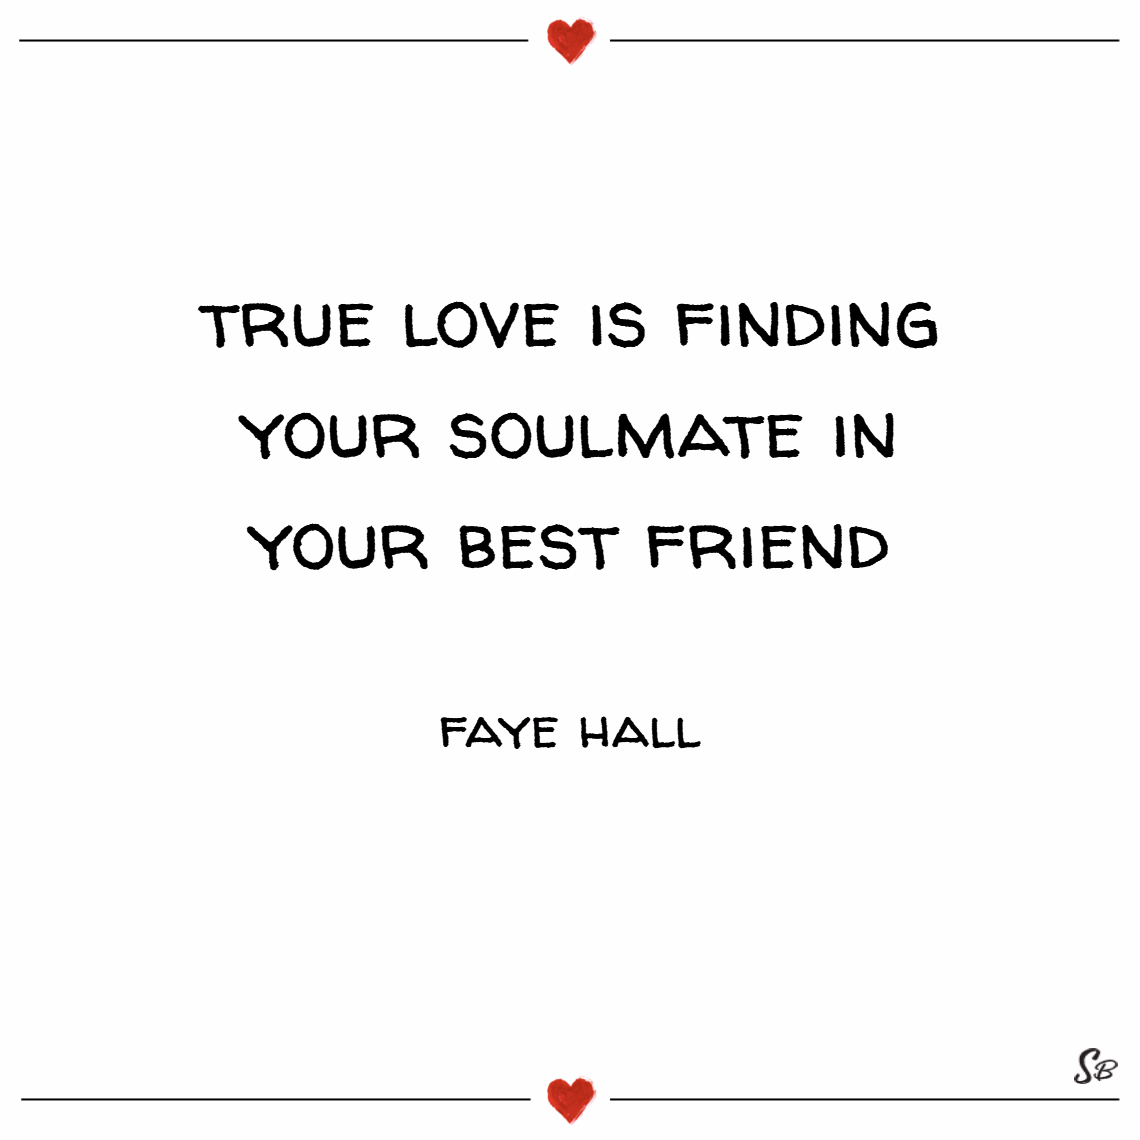 Love Each Other When Two Souls: 31 Soulmate Quotes On Love, Life And Connection